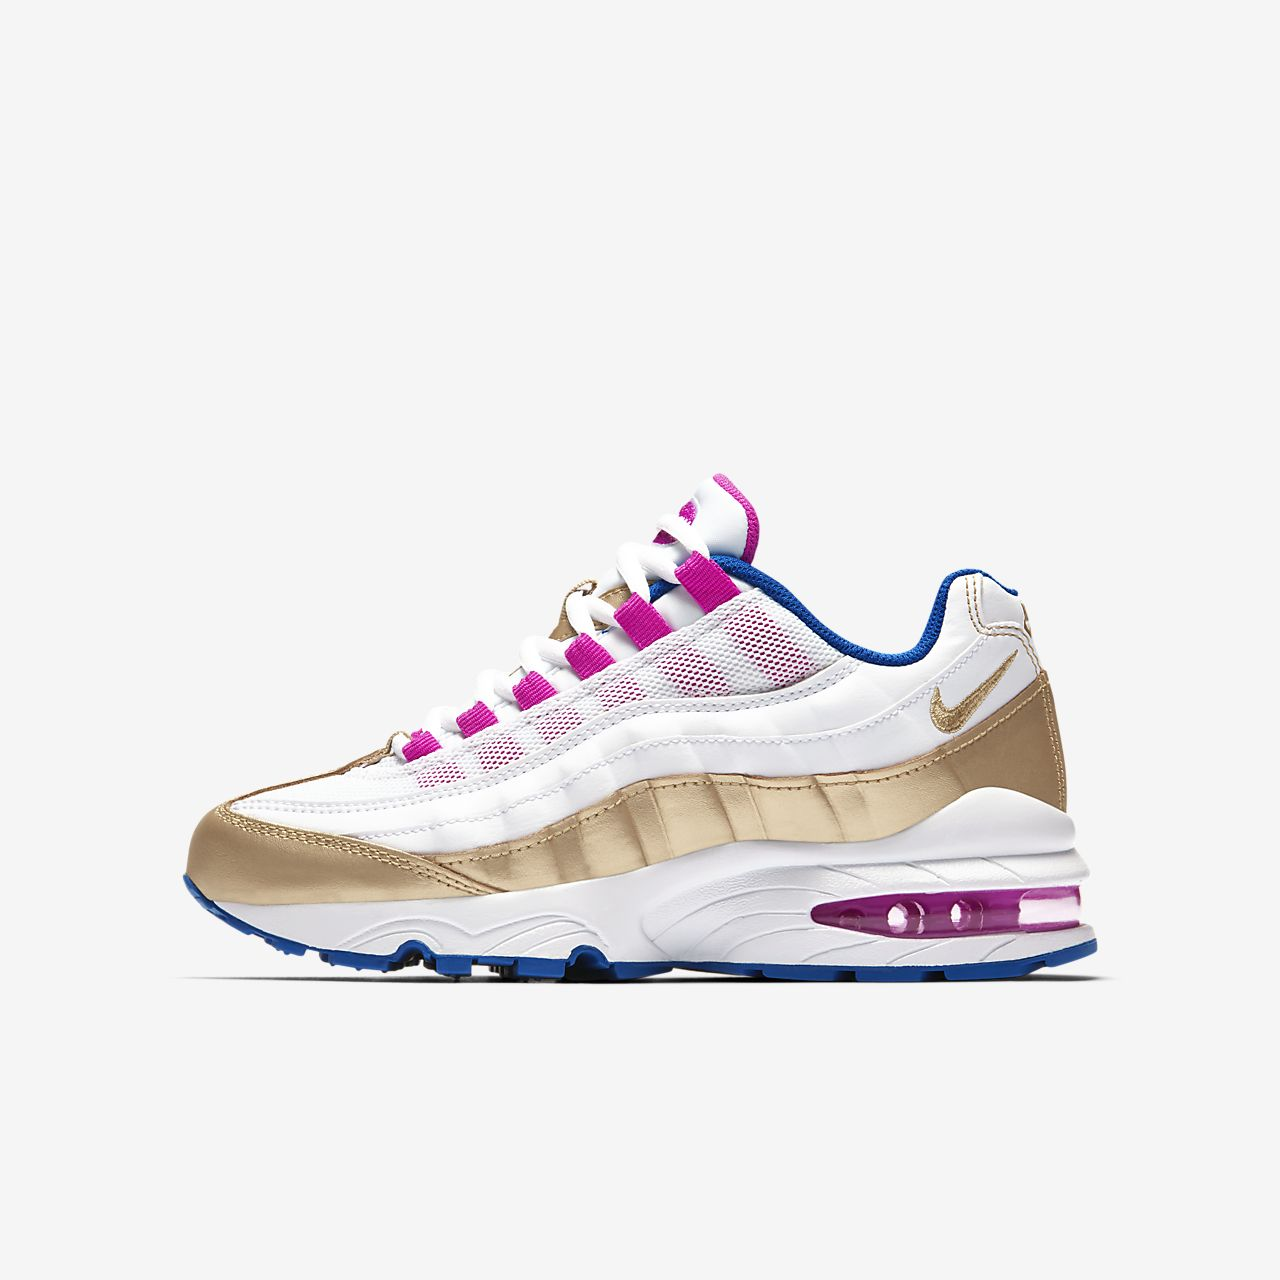 nike air max 95 white and gold nz